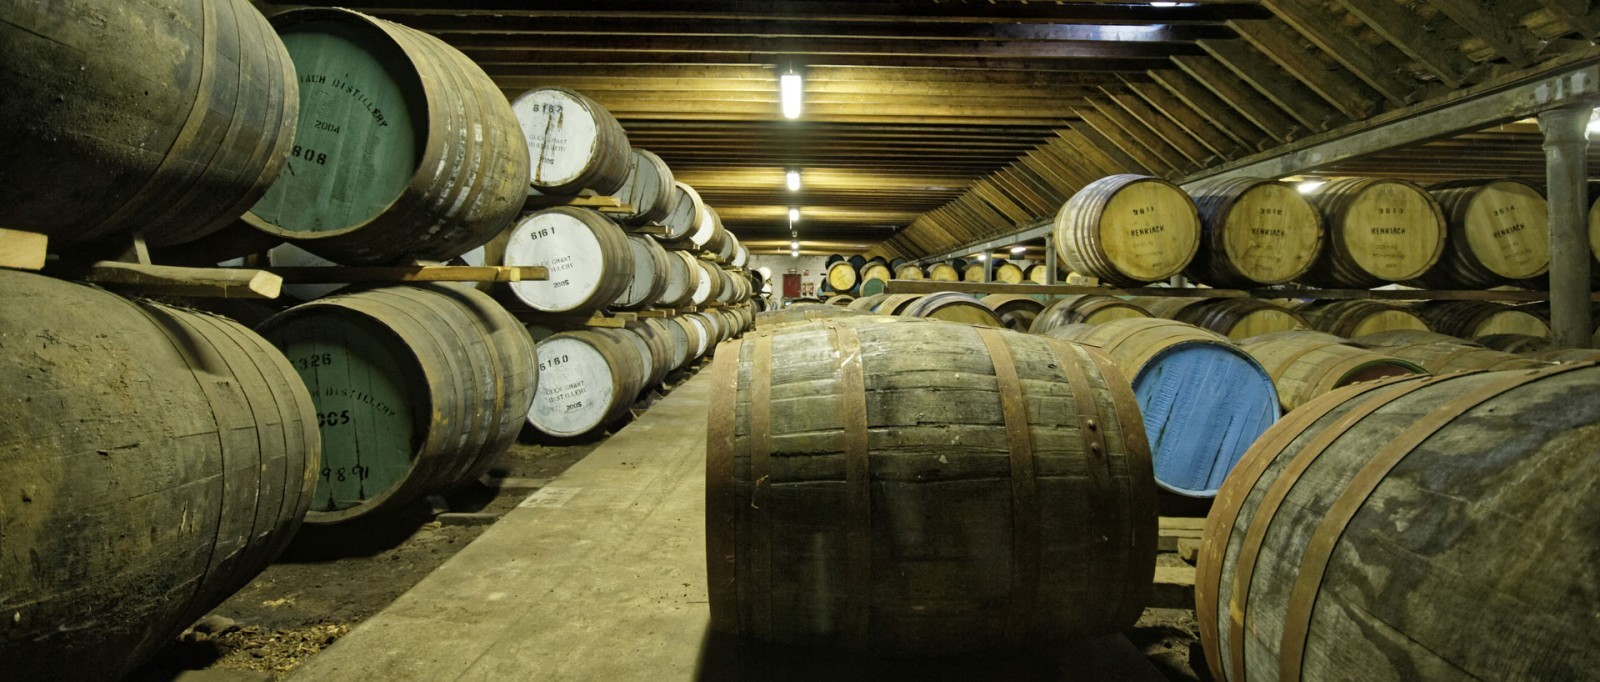 BenRiach Warehouses/Fasslager